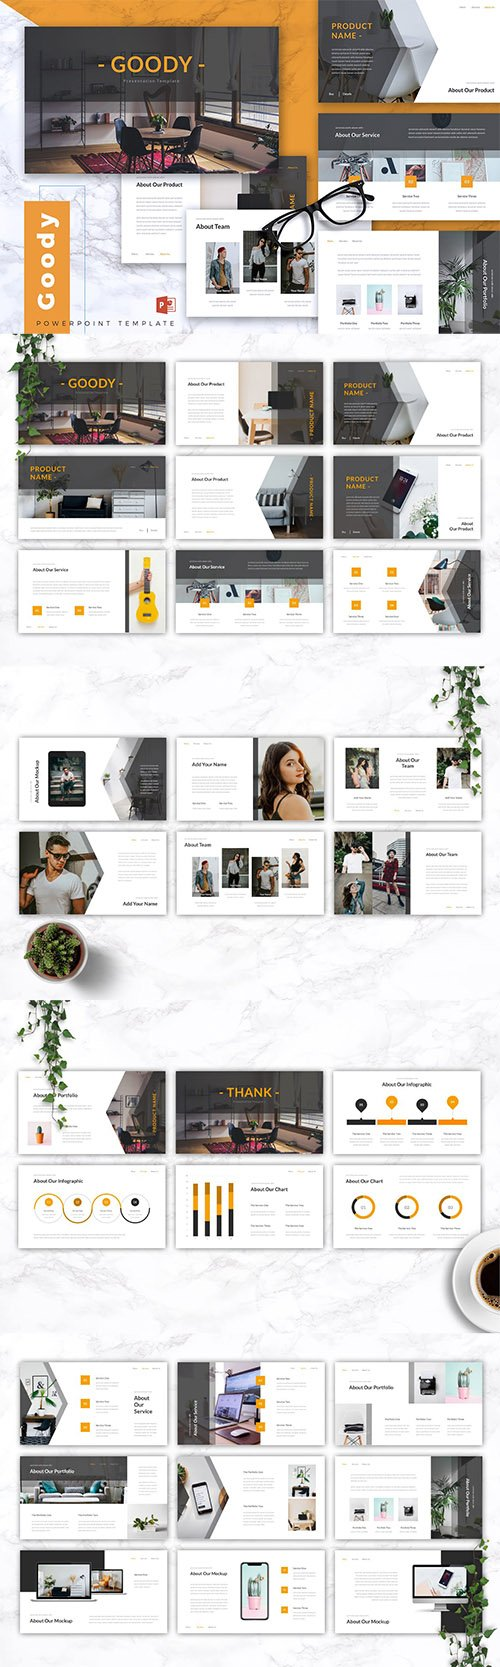 GOODY - Business Powerpoint, Keynote and Google Slides Templates